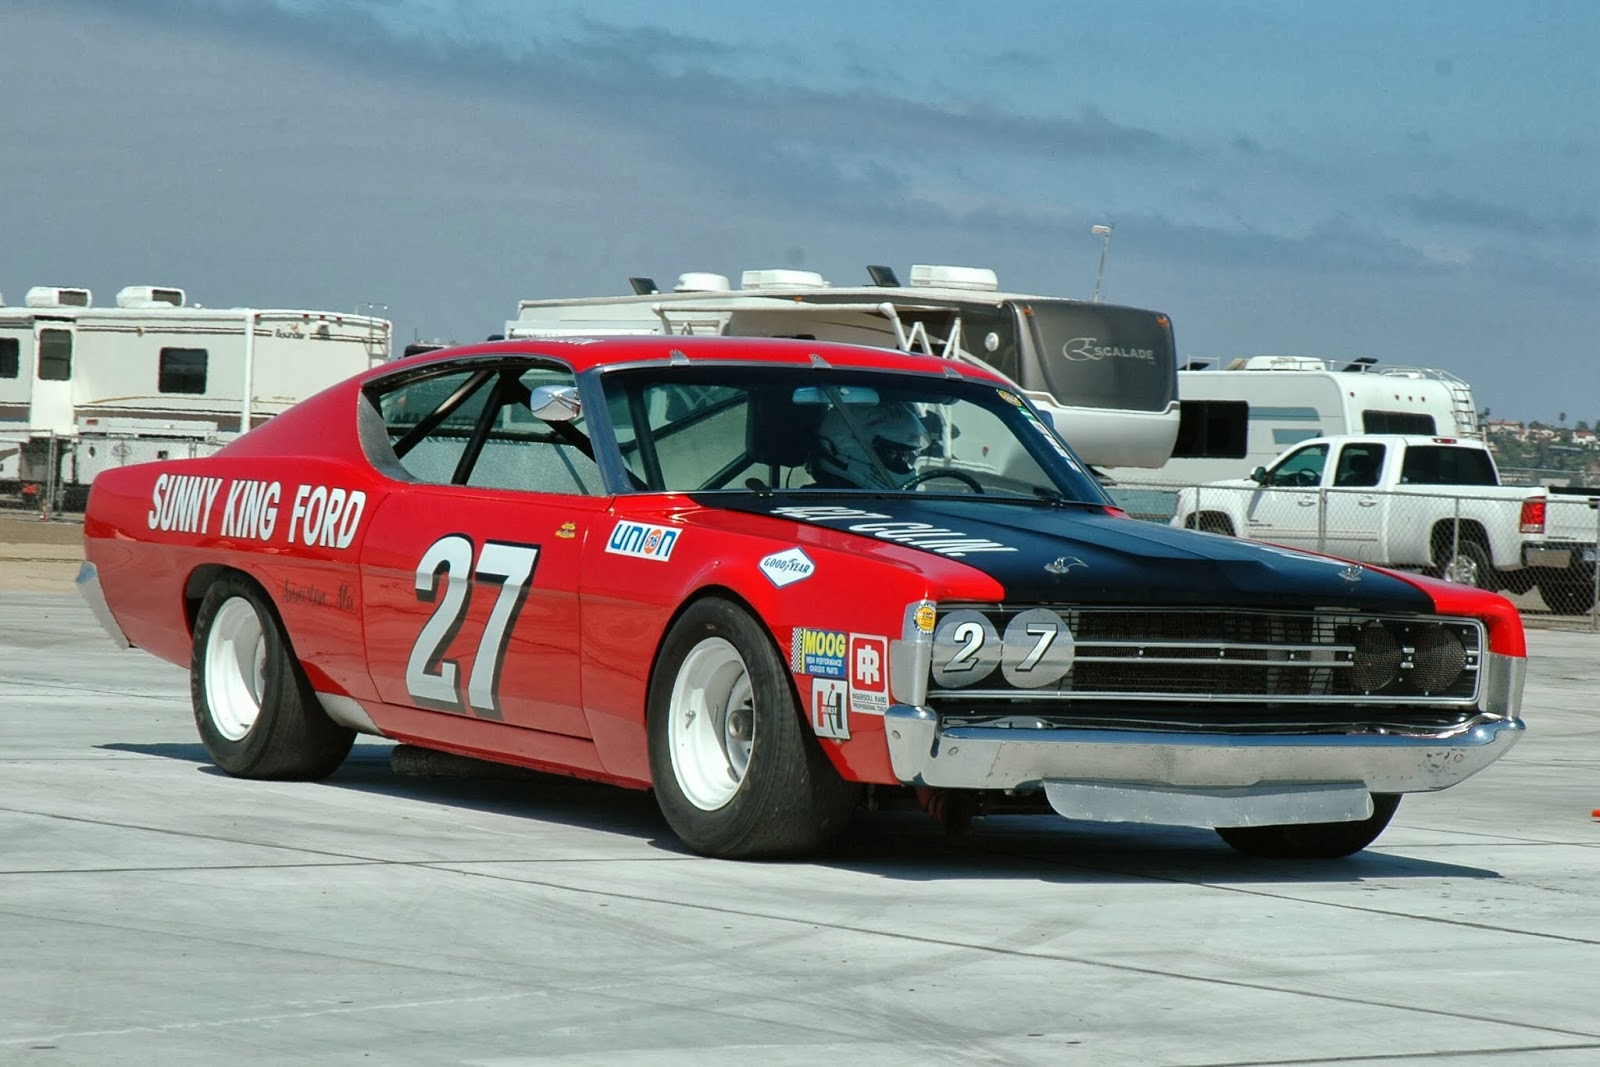 Beautiful Old Nascar Race Cars Image Collection - Classic Cars Ideas ...